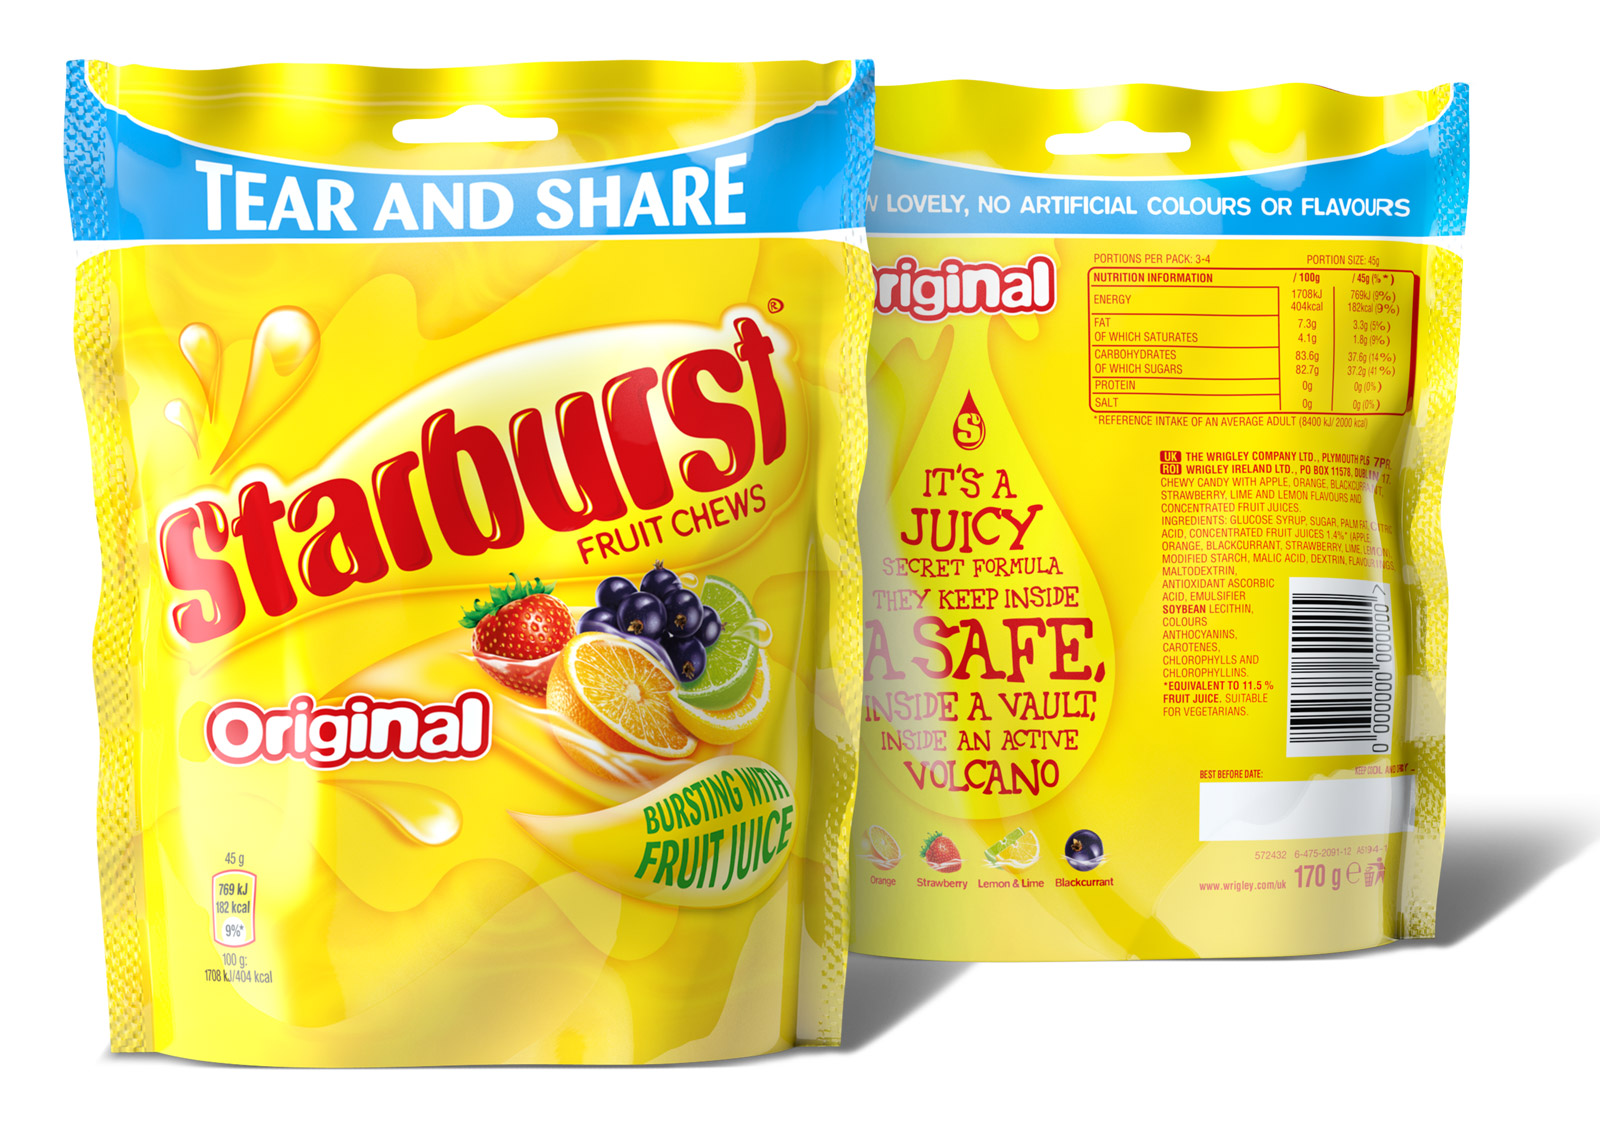 2014 Starburst Original Packaging front and back